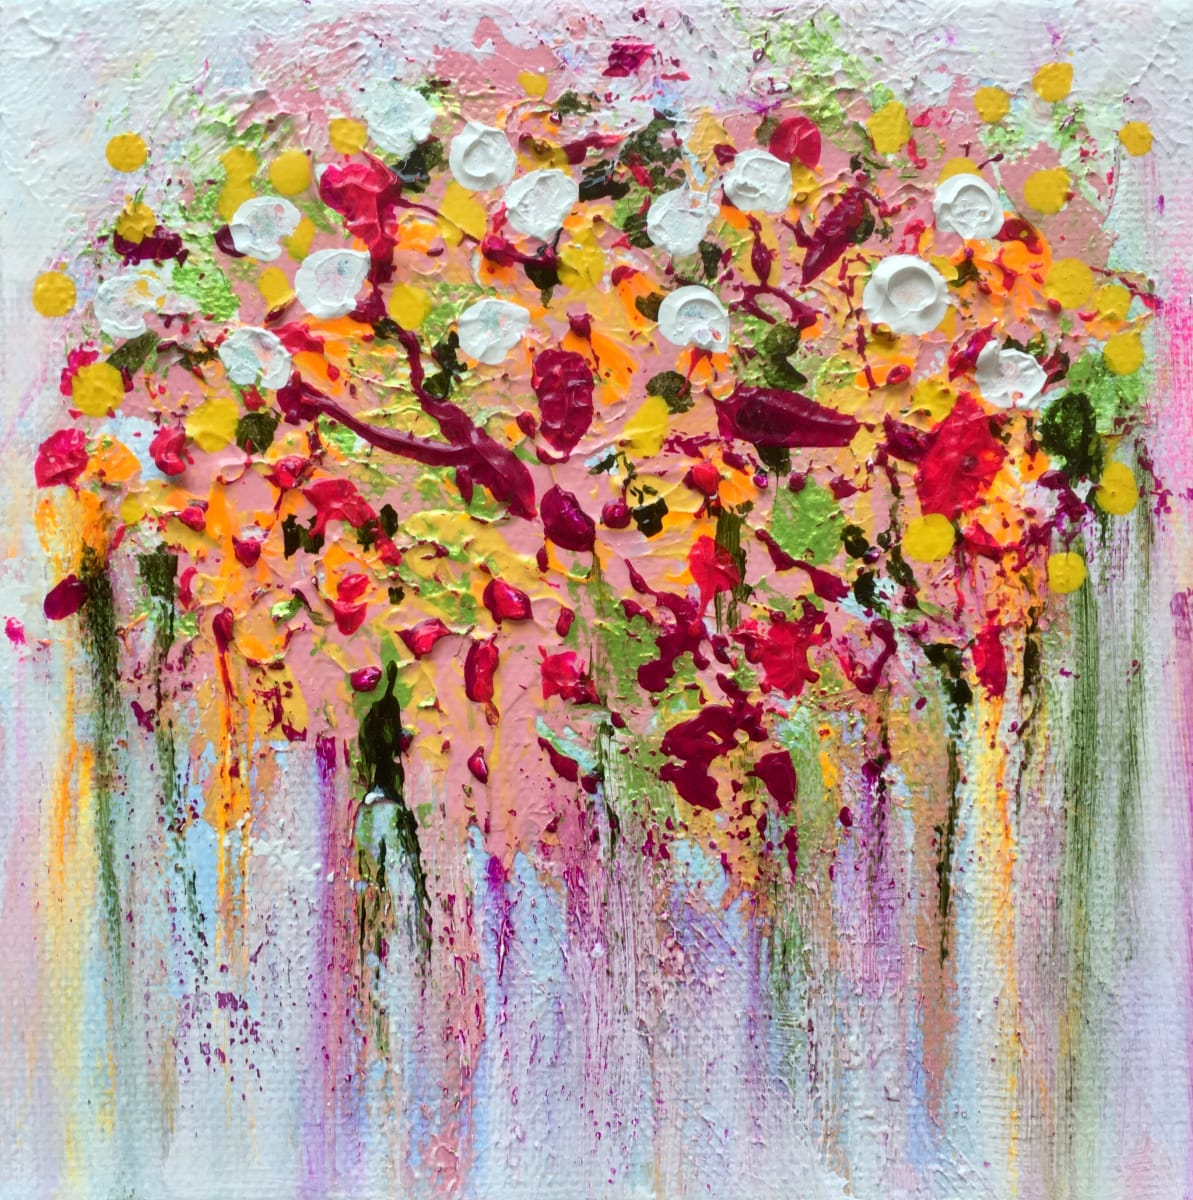 Say it with Flowers no. 4 by Julea Boswell